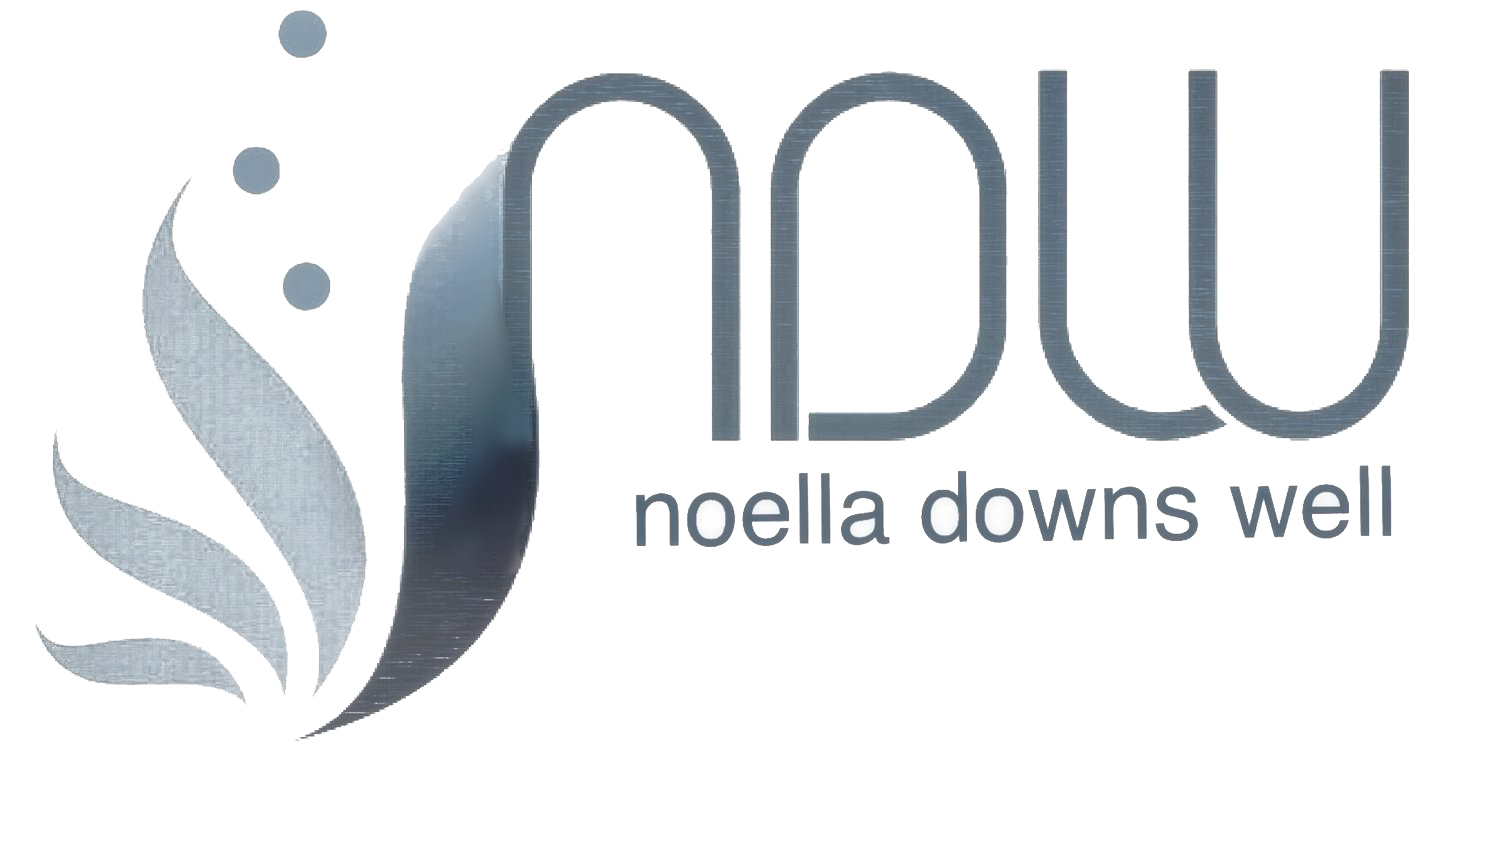 noella downs well